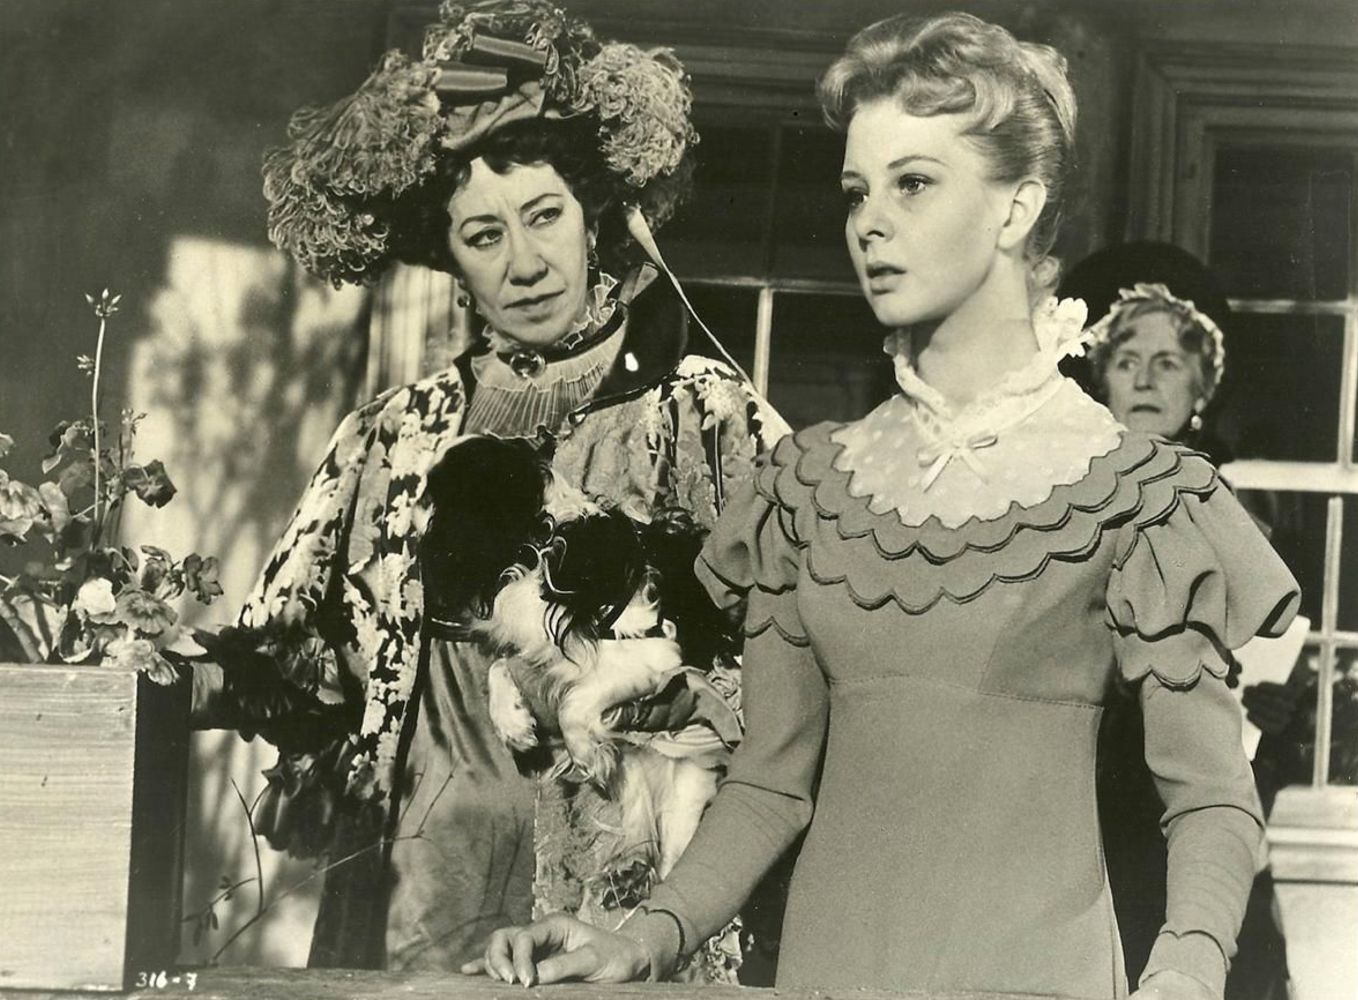 June Laverick and Flora Robson in The Gypsy and the Gentleman (1958)